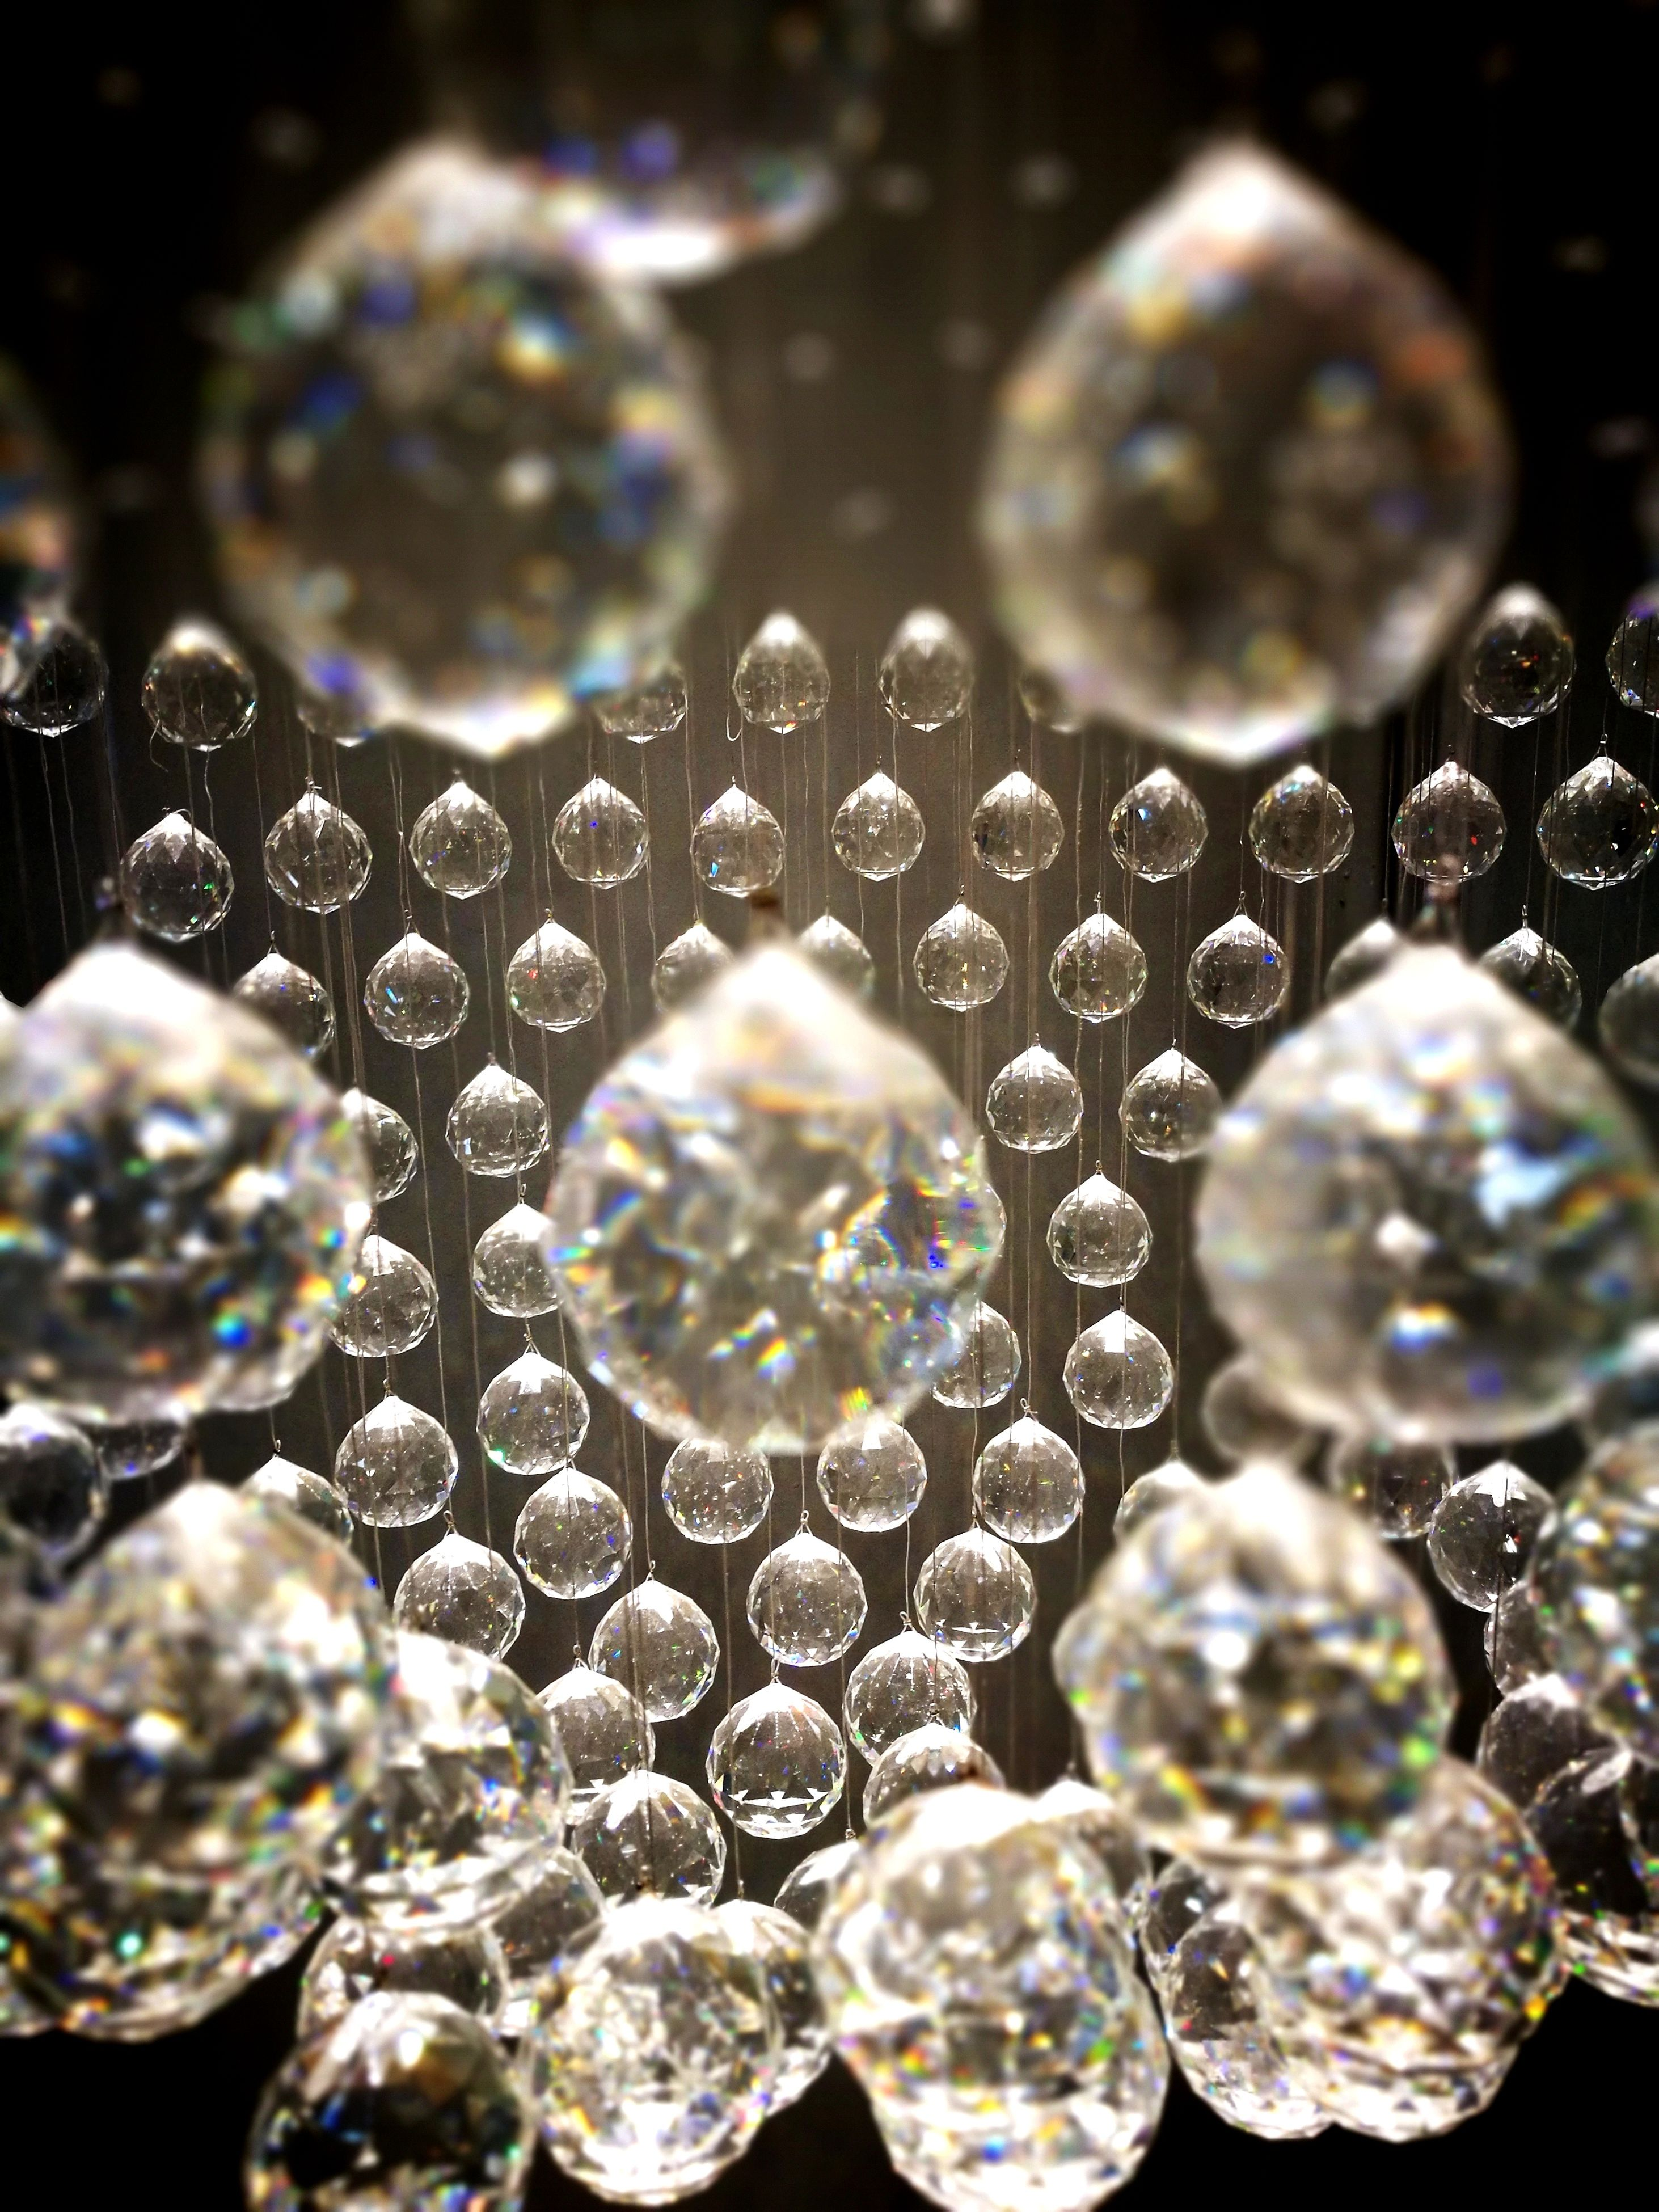 luxury, wealth, shiny, elegance, crystal, jewelry, gemstone, full frame, large group of objects, no people, backgrounds, group of objects, precious gem, close-up, indoors, day